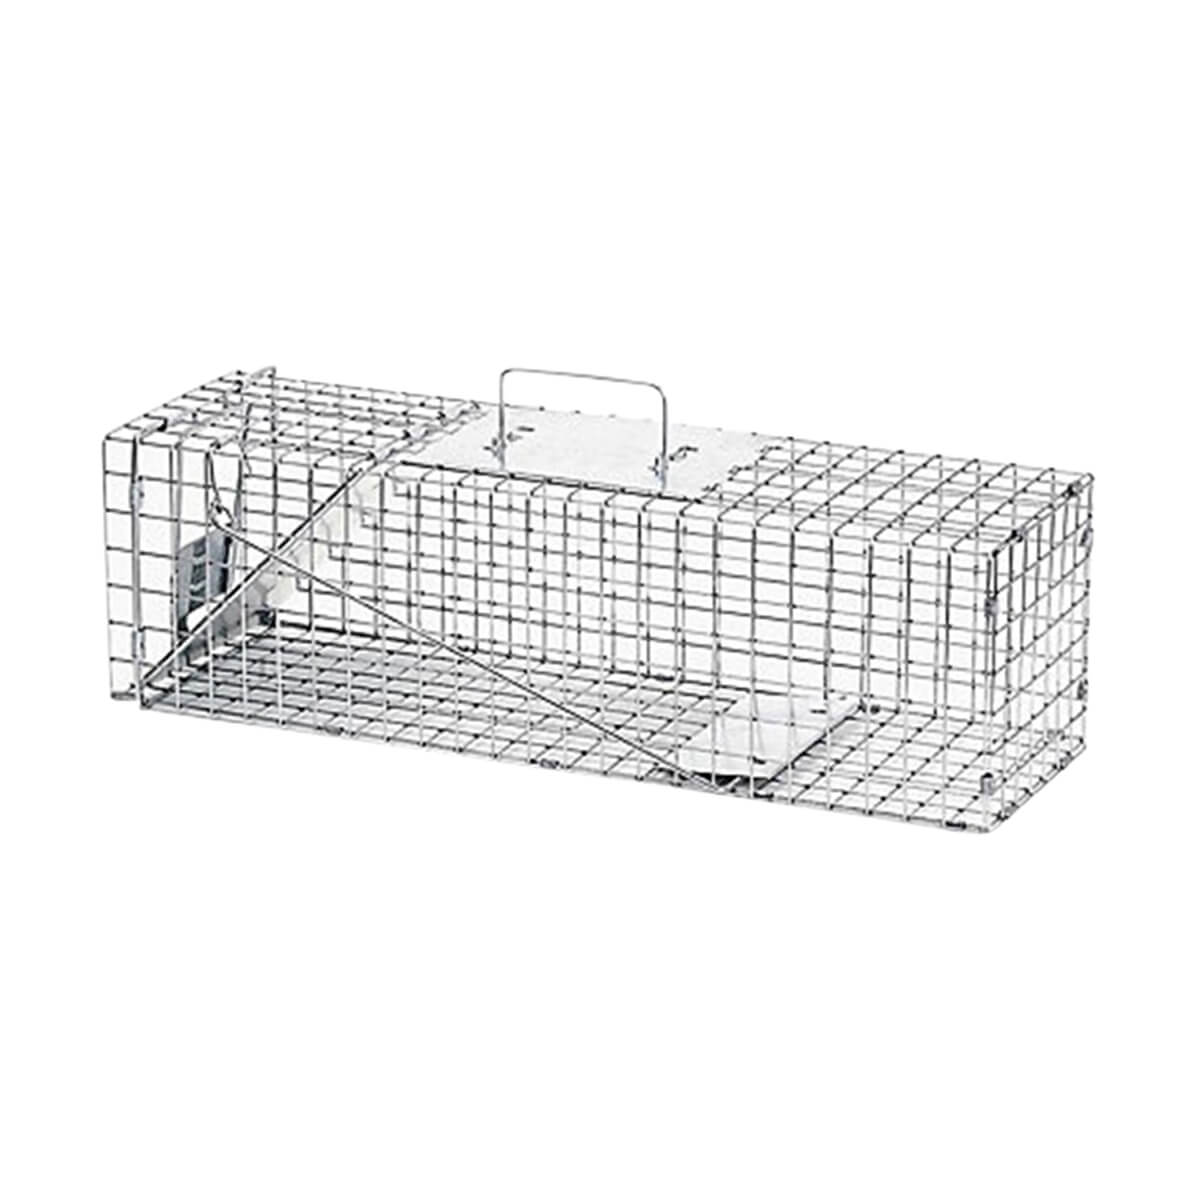 "Live Animal Traps - 24"" x 7"" x 7"" (squirrel/rabbit)"